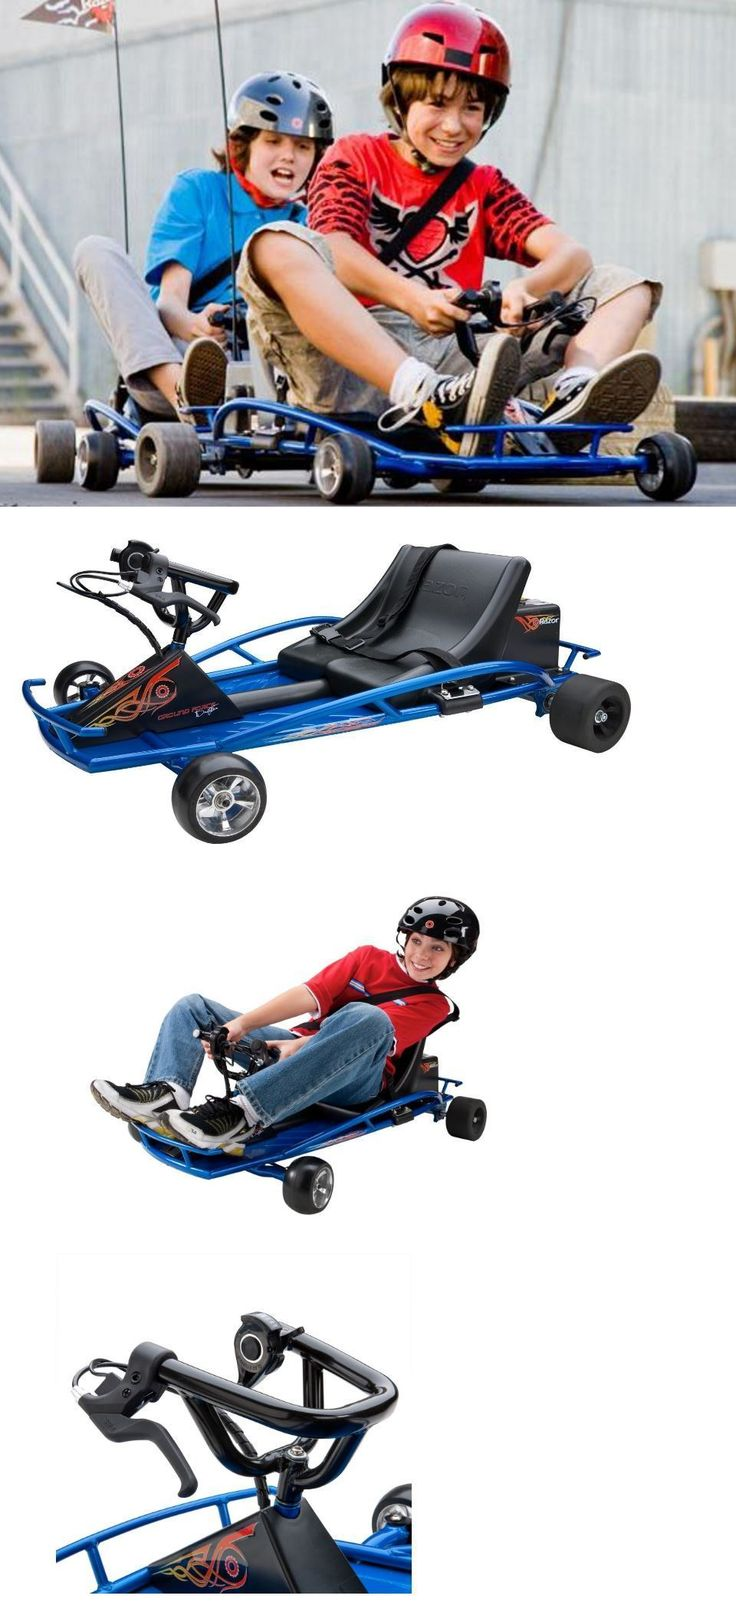 Complete Go-Karts and Frames 64656: Go Karts For Kids 10 Year Olds Teens Frame Razor Electric Racing Low Profile -> BUY IT NOW ONLY: $337.79 on eBay!